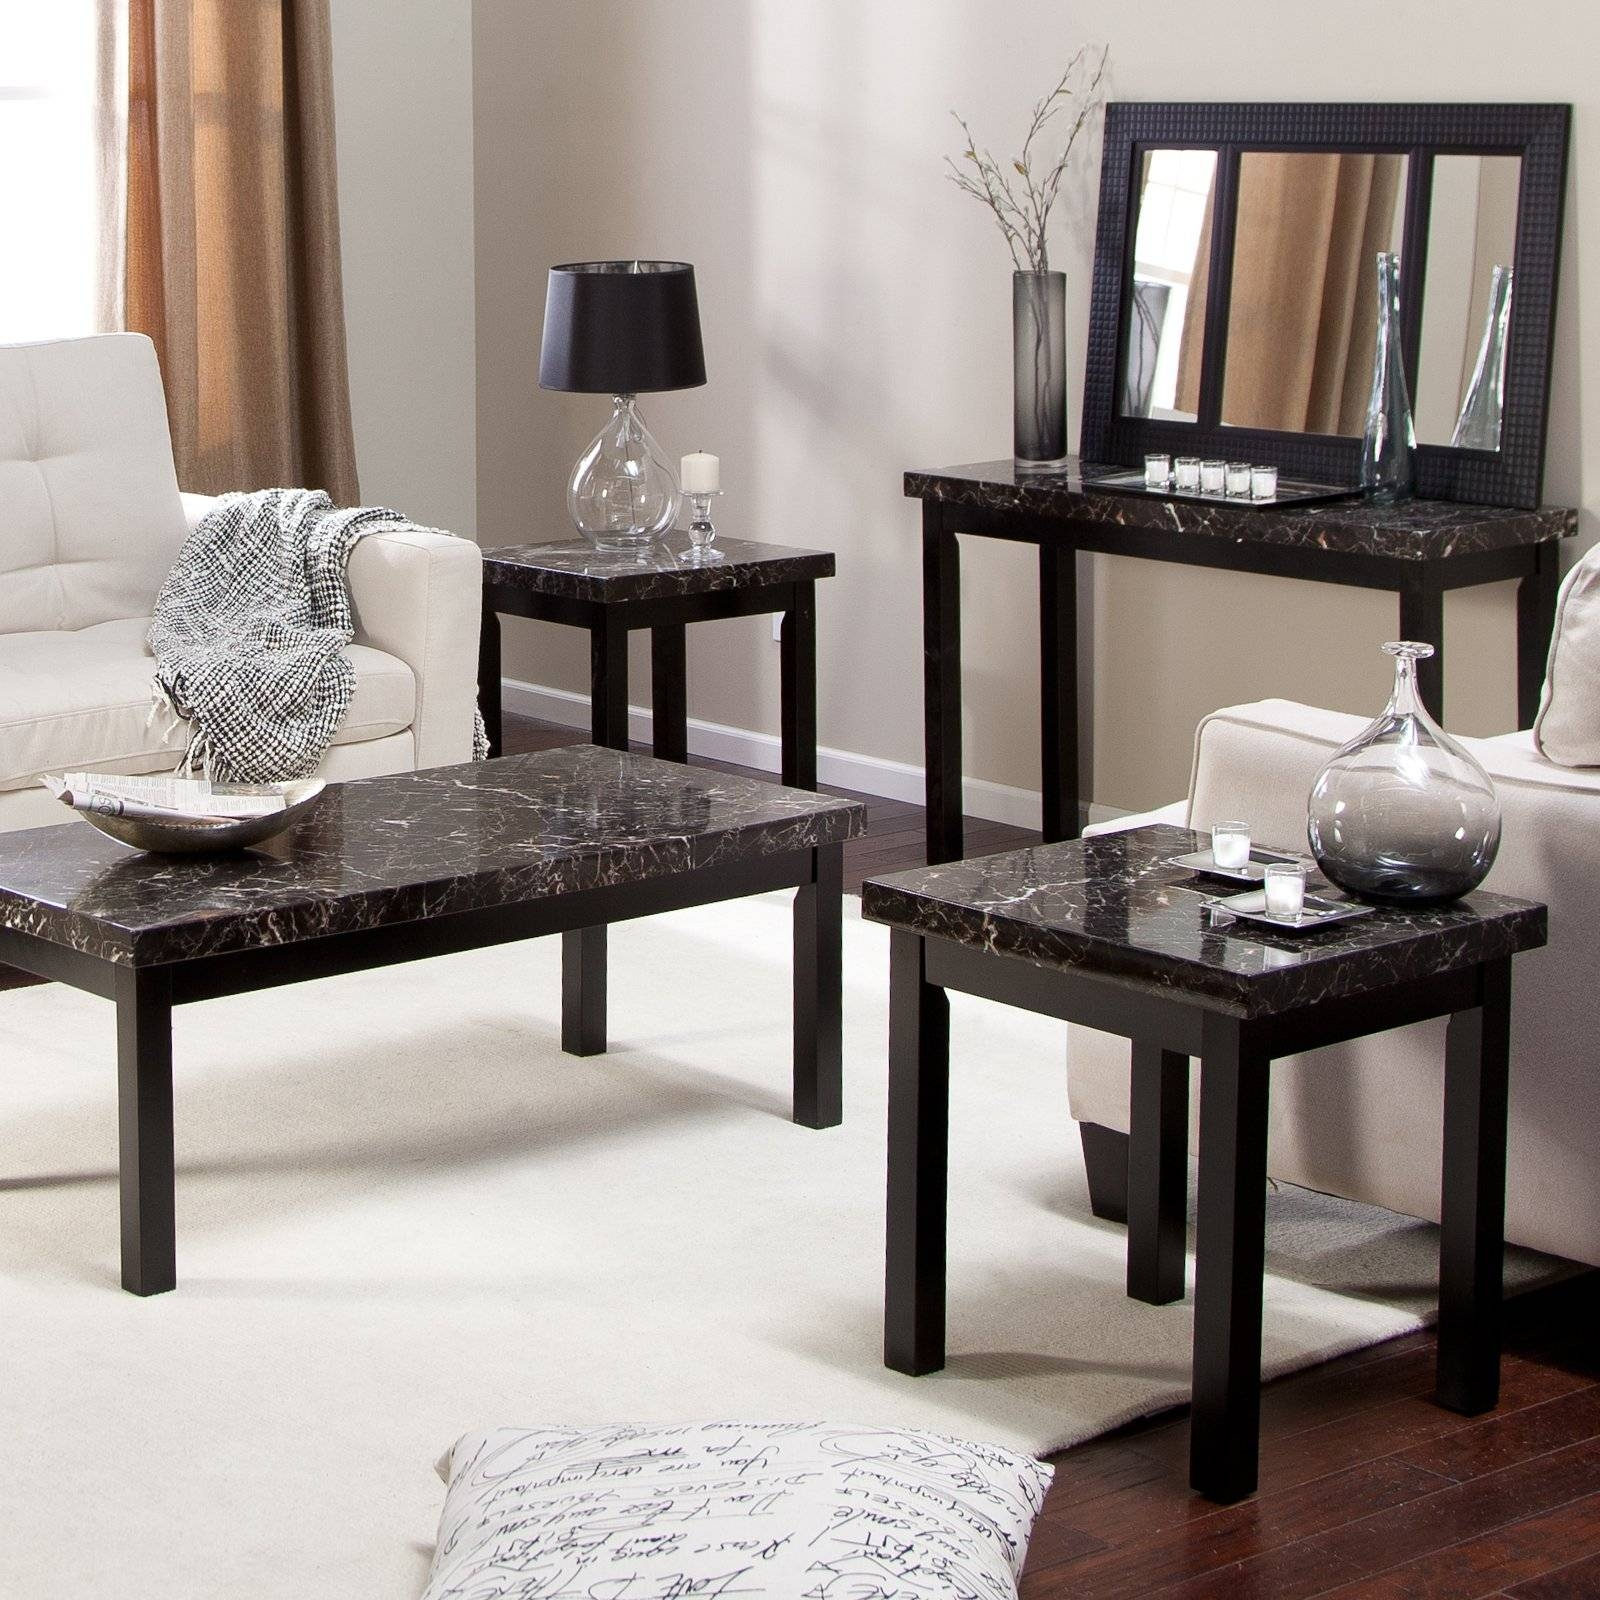 Coffee Table Sets For Sale On Hayneedle – Shop Unique Cocktail Tables within Coffee Table With Chairs (Image 15 of 30)